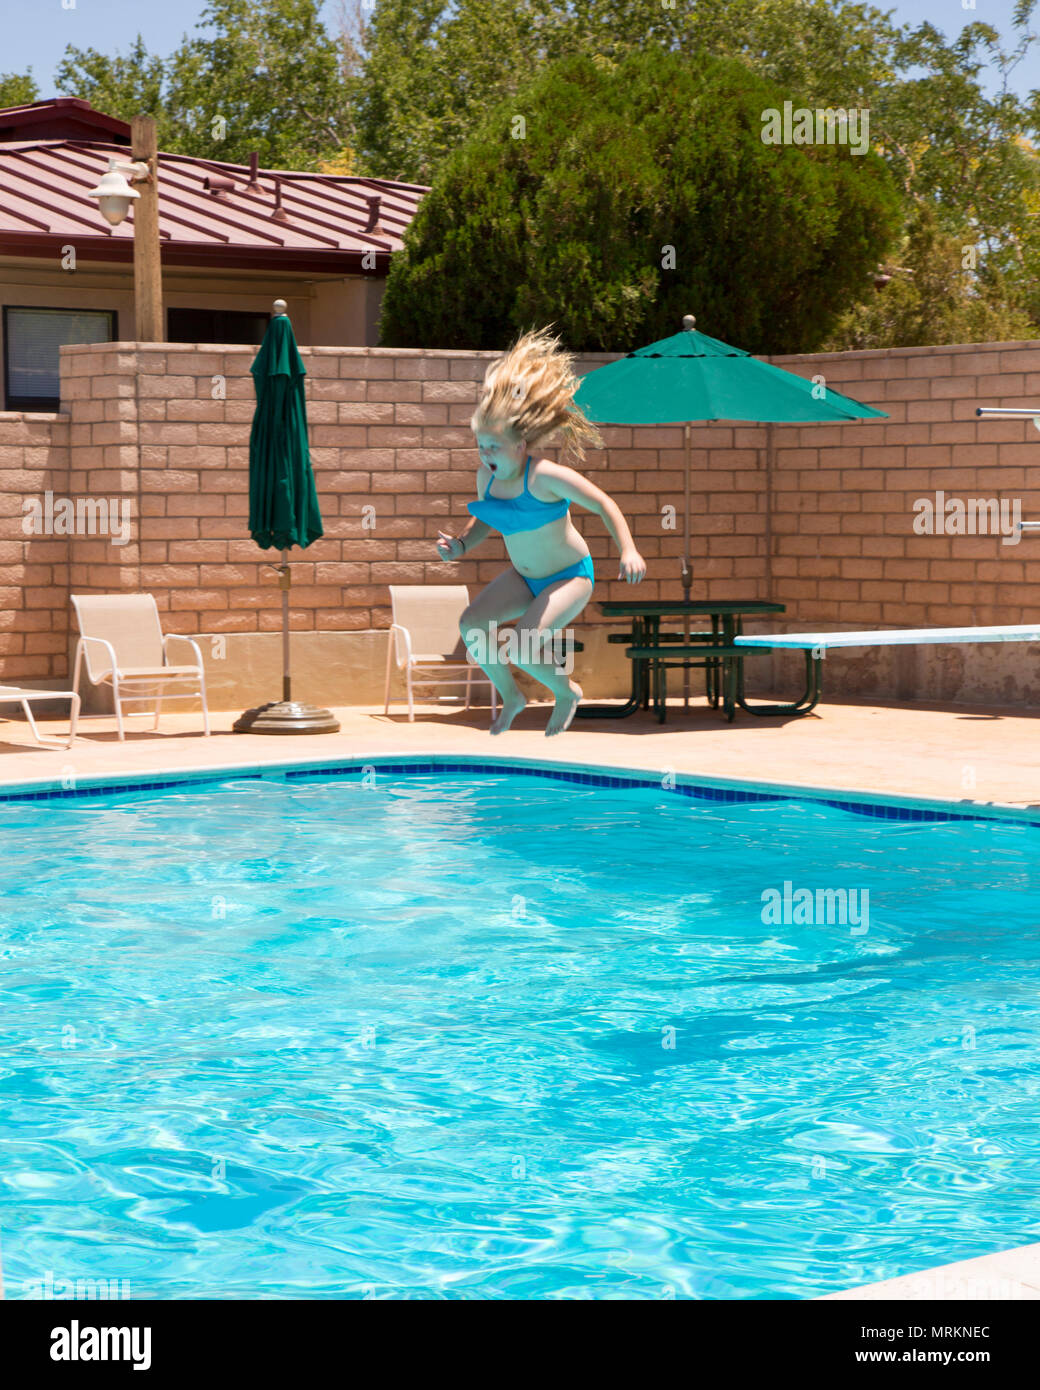 5f74391fd44 Chloe Bledsoe takes a plunge off the diving board at the Oasis Pool and  Water Park during the School Age Care Summer Camp held aboard Marine Corps  Logistics ...